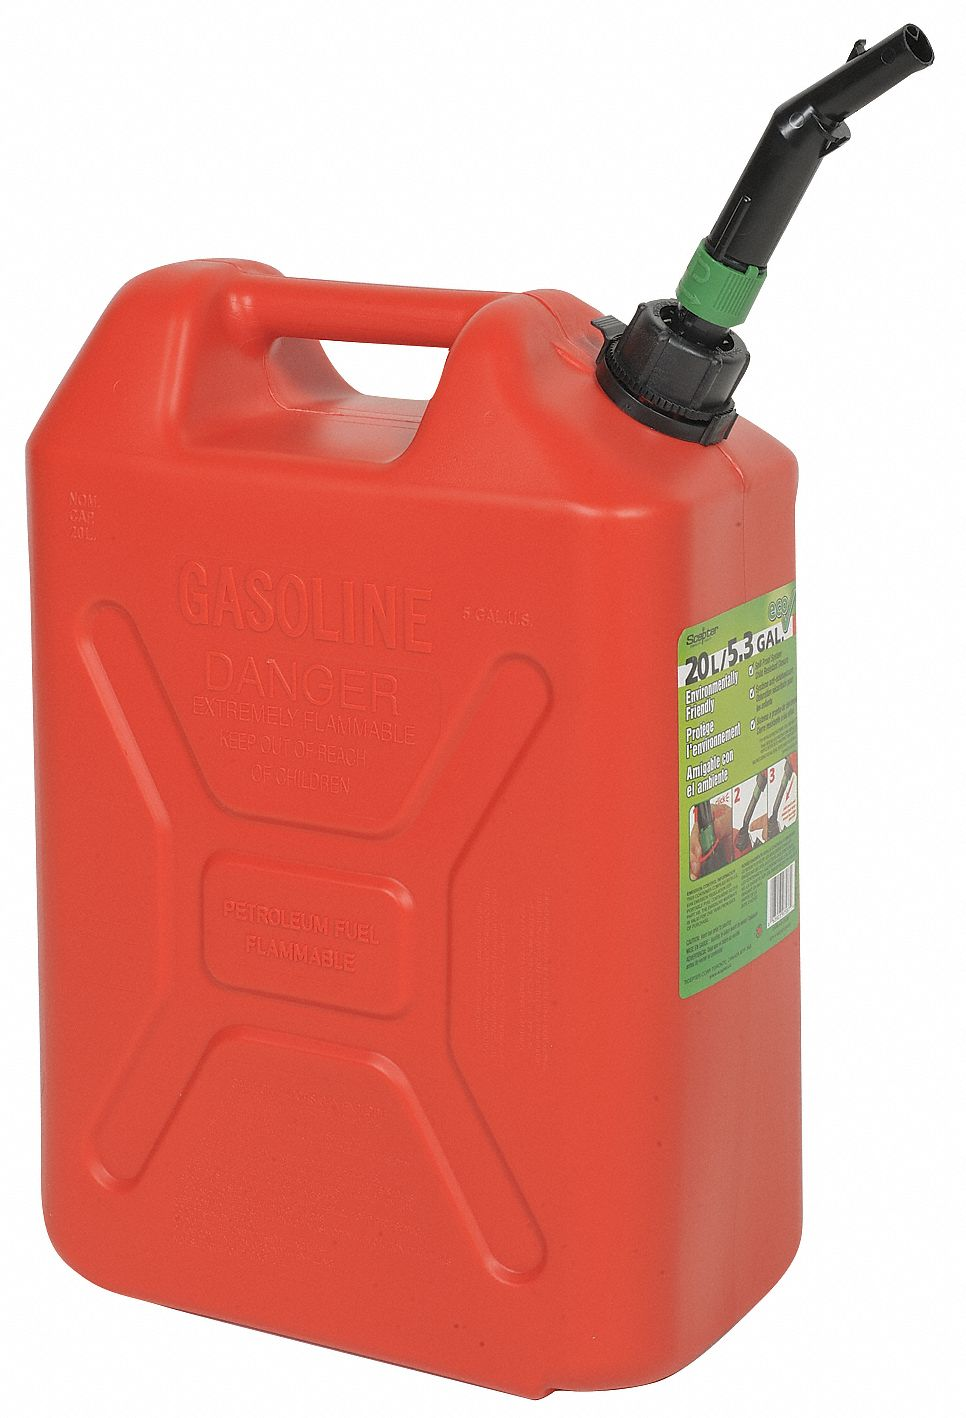 Gas Can,  Plastic,  5 gal Capacity,  18 15/32 in Height,  13 7/64 in Length,  7 15/32 in Width